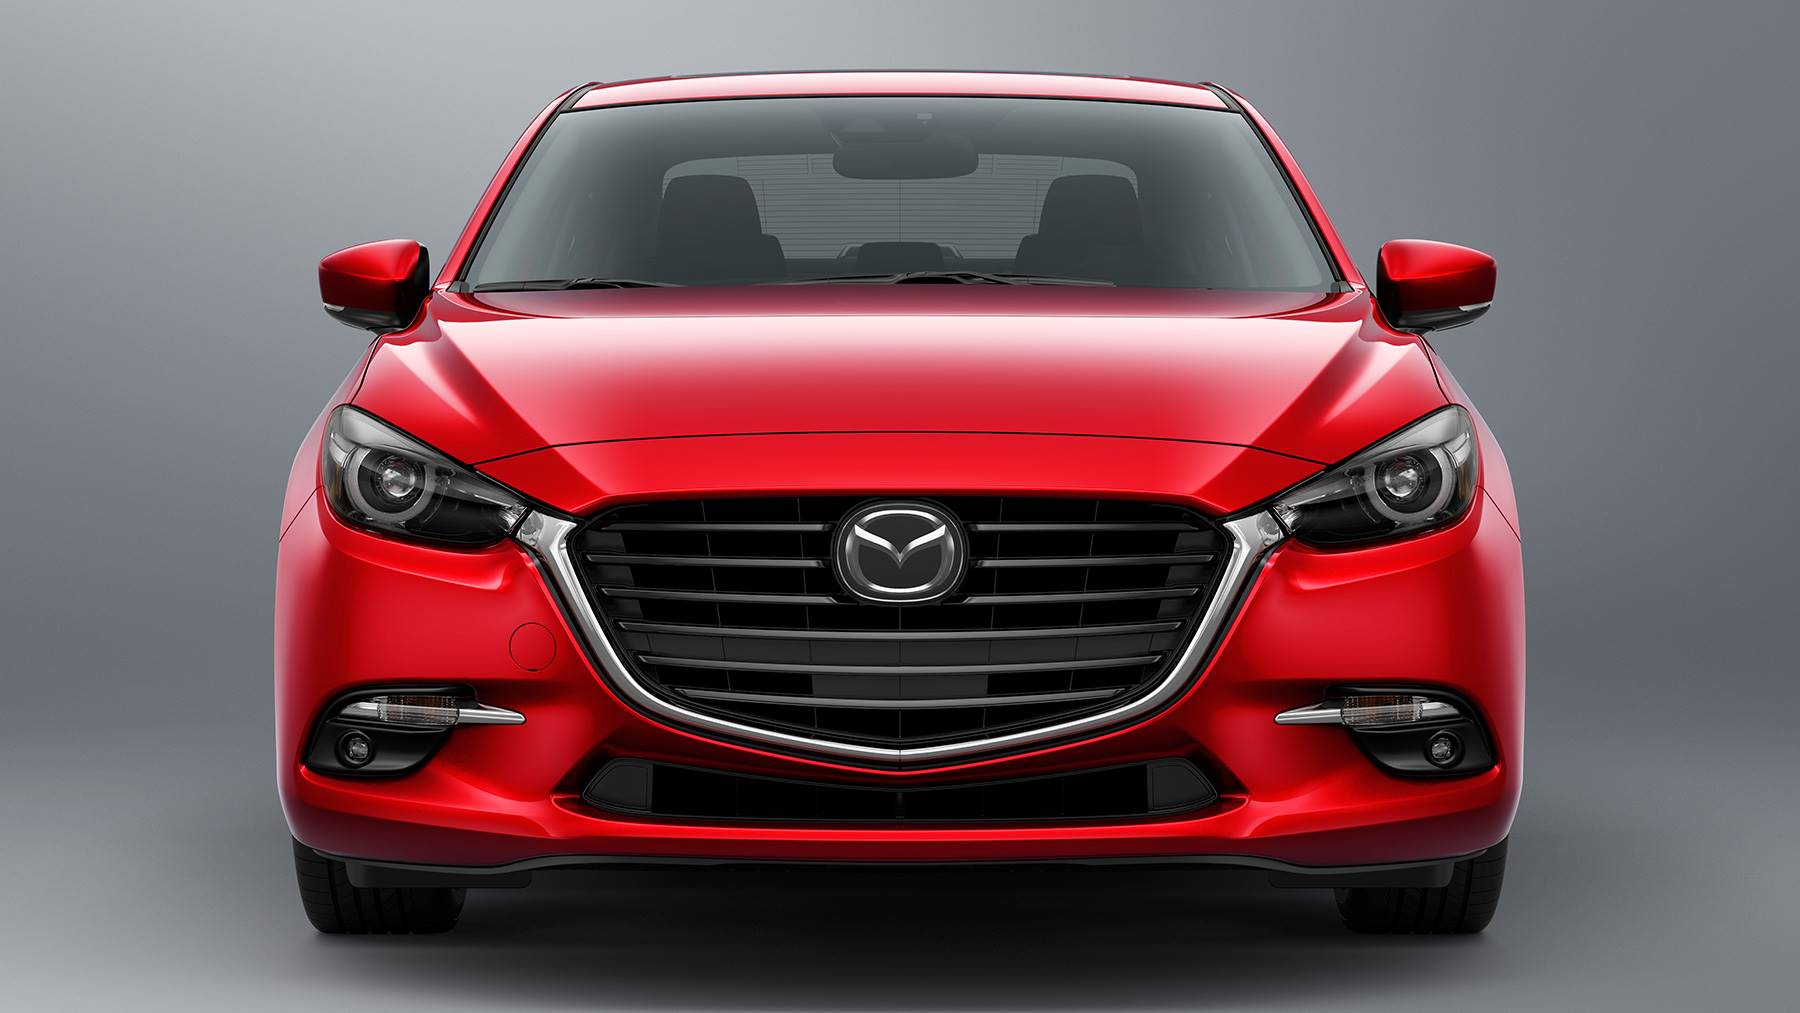 2018 Mazda3 for Sale near Friendswood, TX